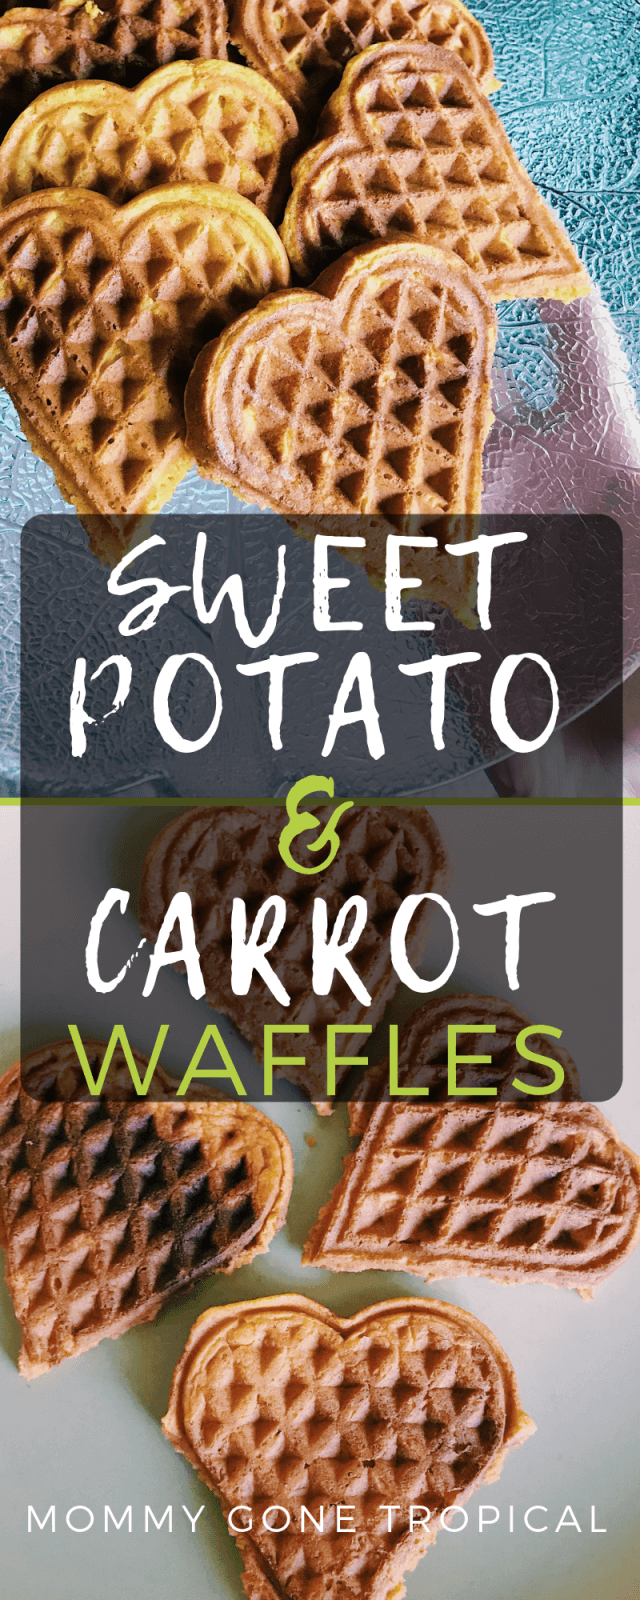 Sweet Potato Carrot Waffles